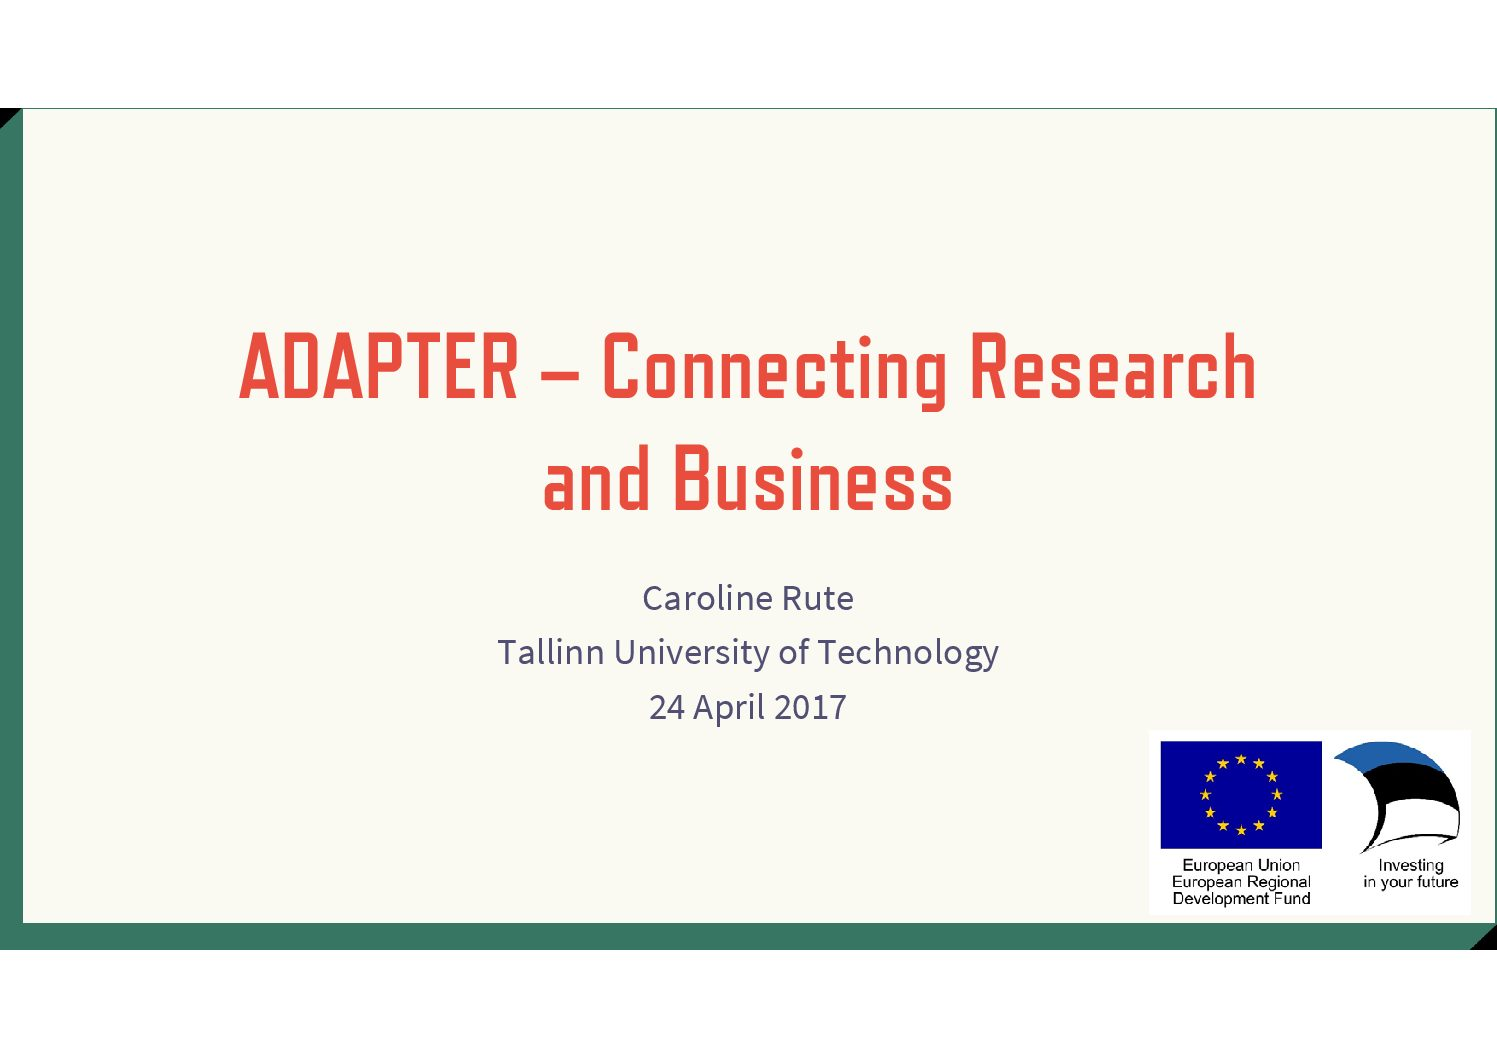 Caroline Rute (ADAPTER) – Connecting Research and Business